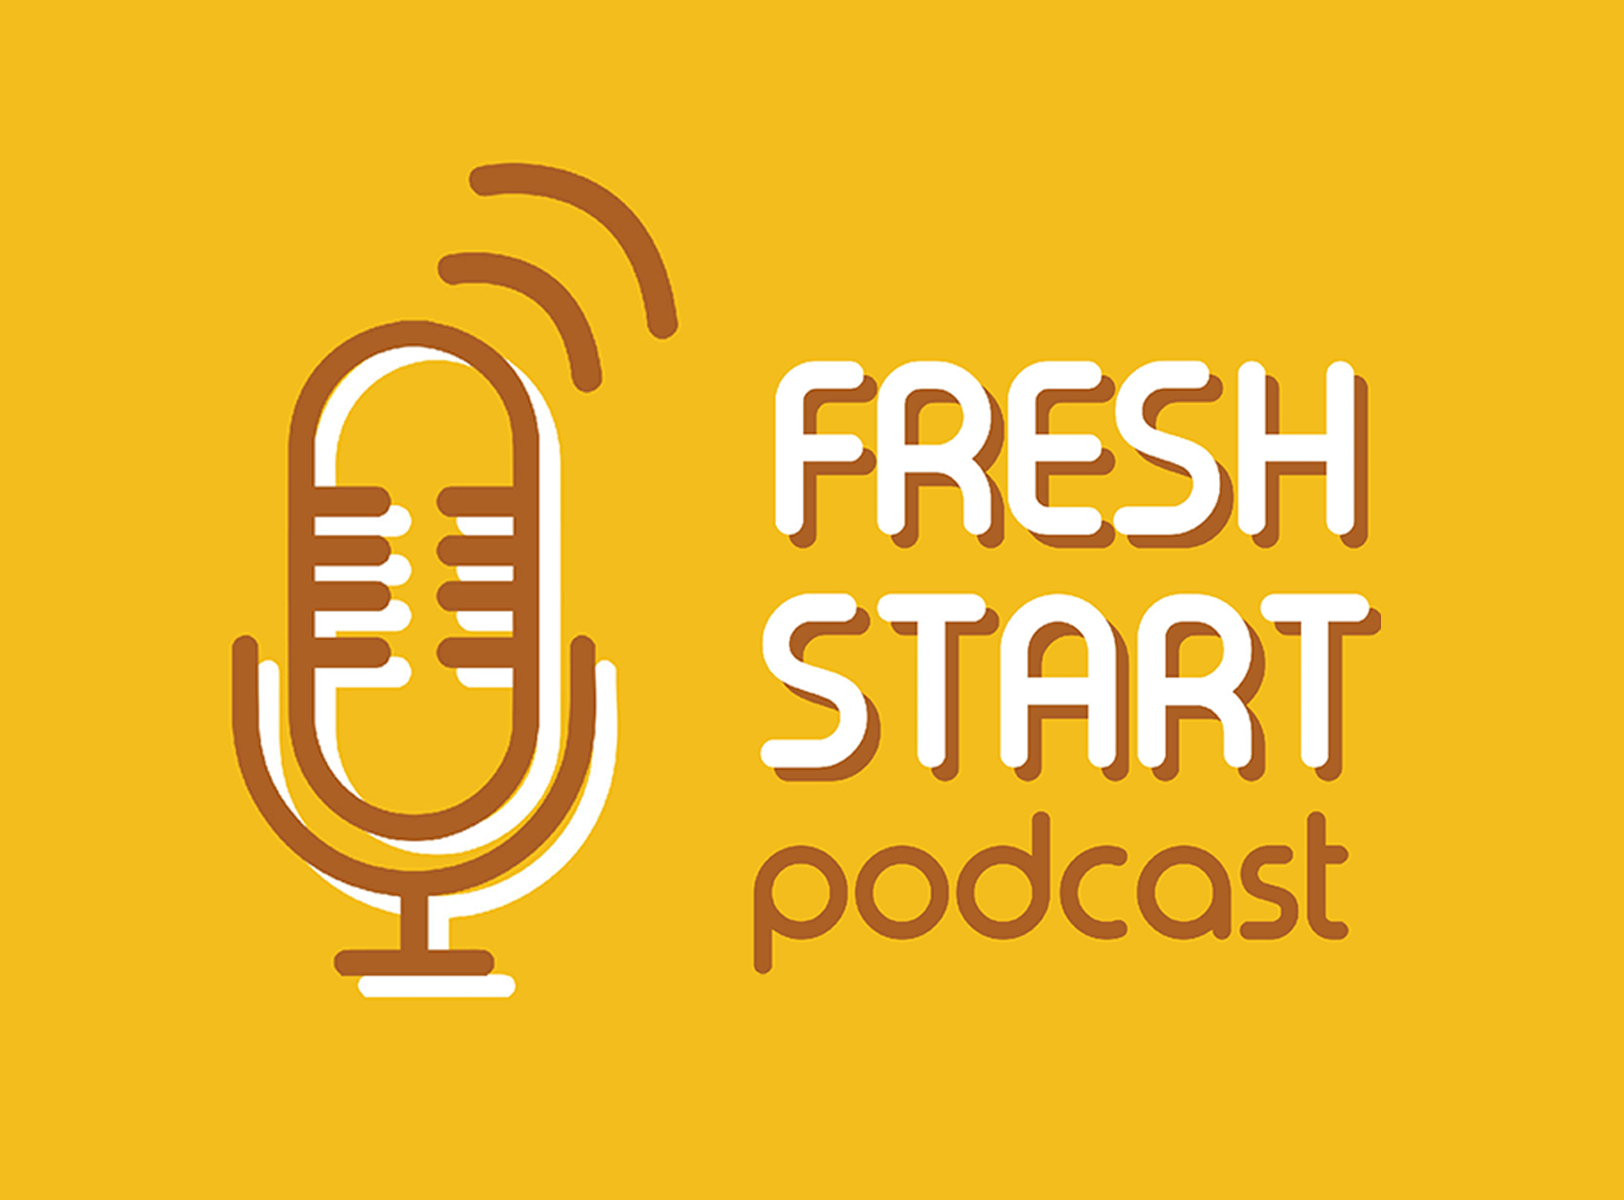 Fresh Start: Podcast News (5/16/2020 Sat.)